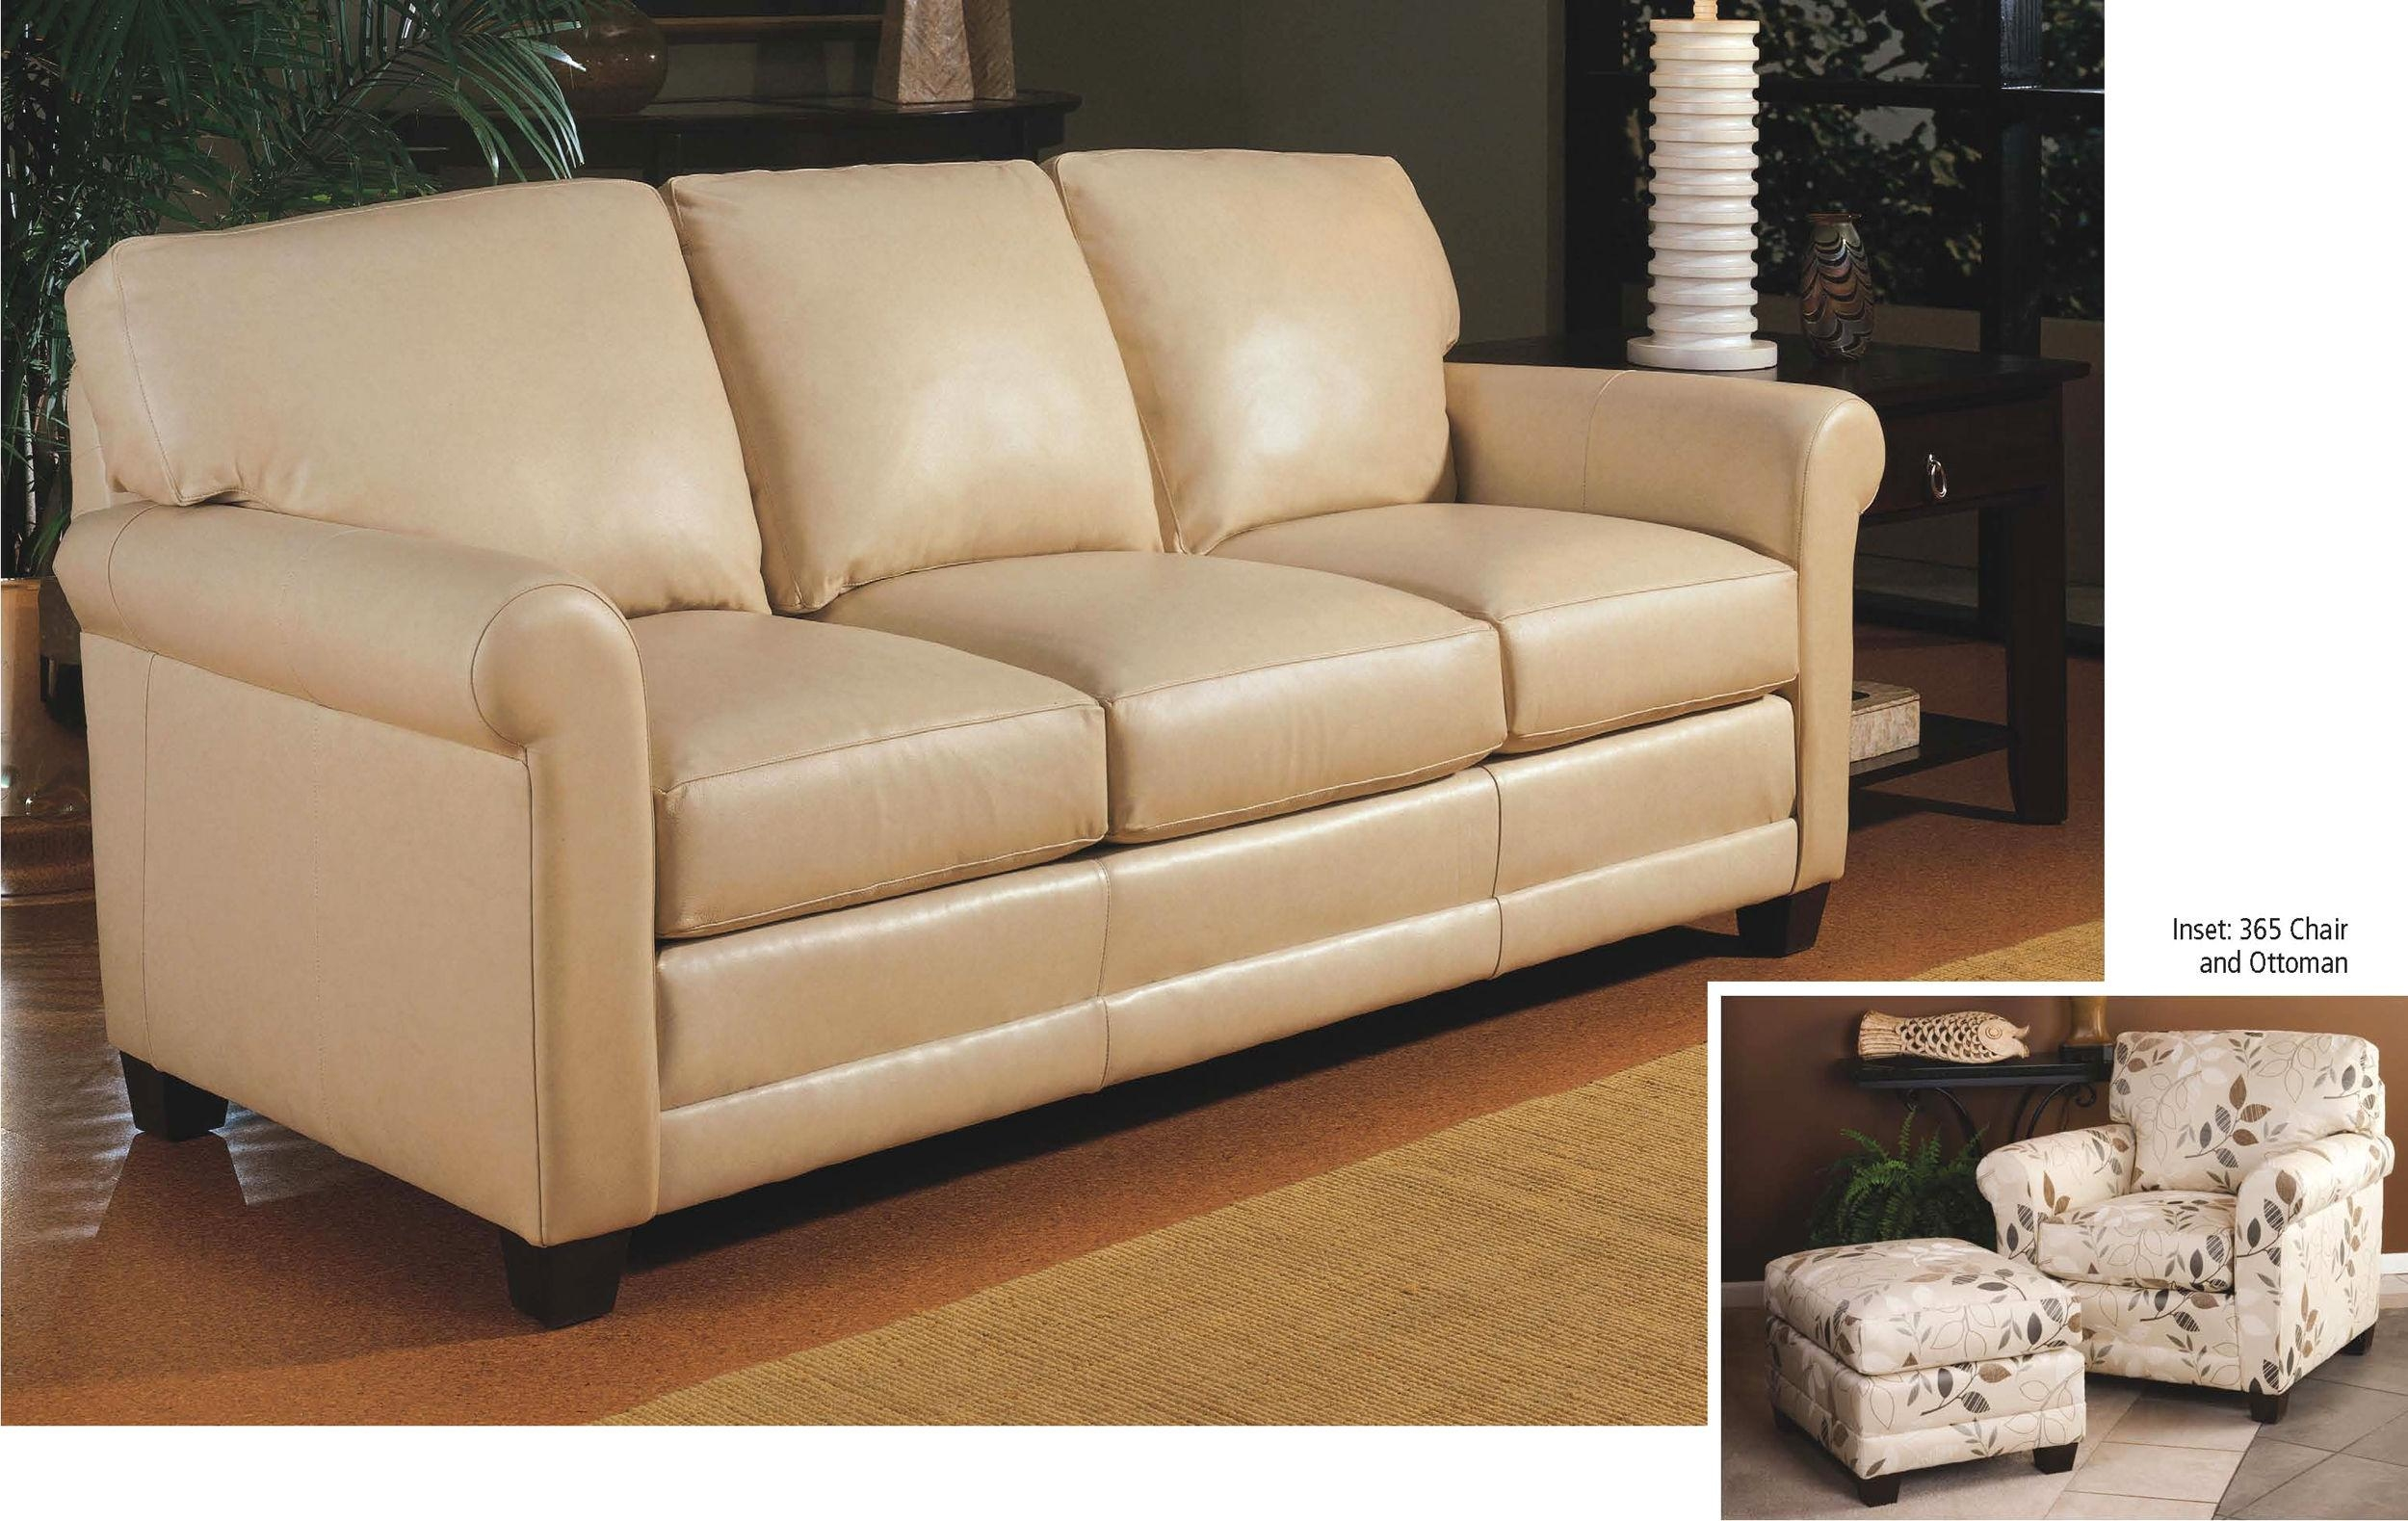 Smith Brothers Leather Sofa ~ Hmmi With Regard To Smith Brothers Sofas (Image 10 of 20)